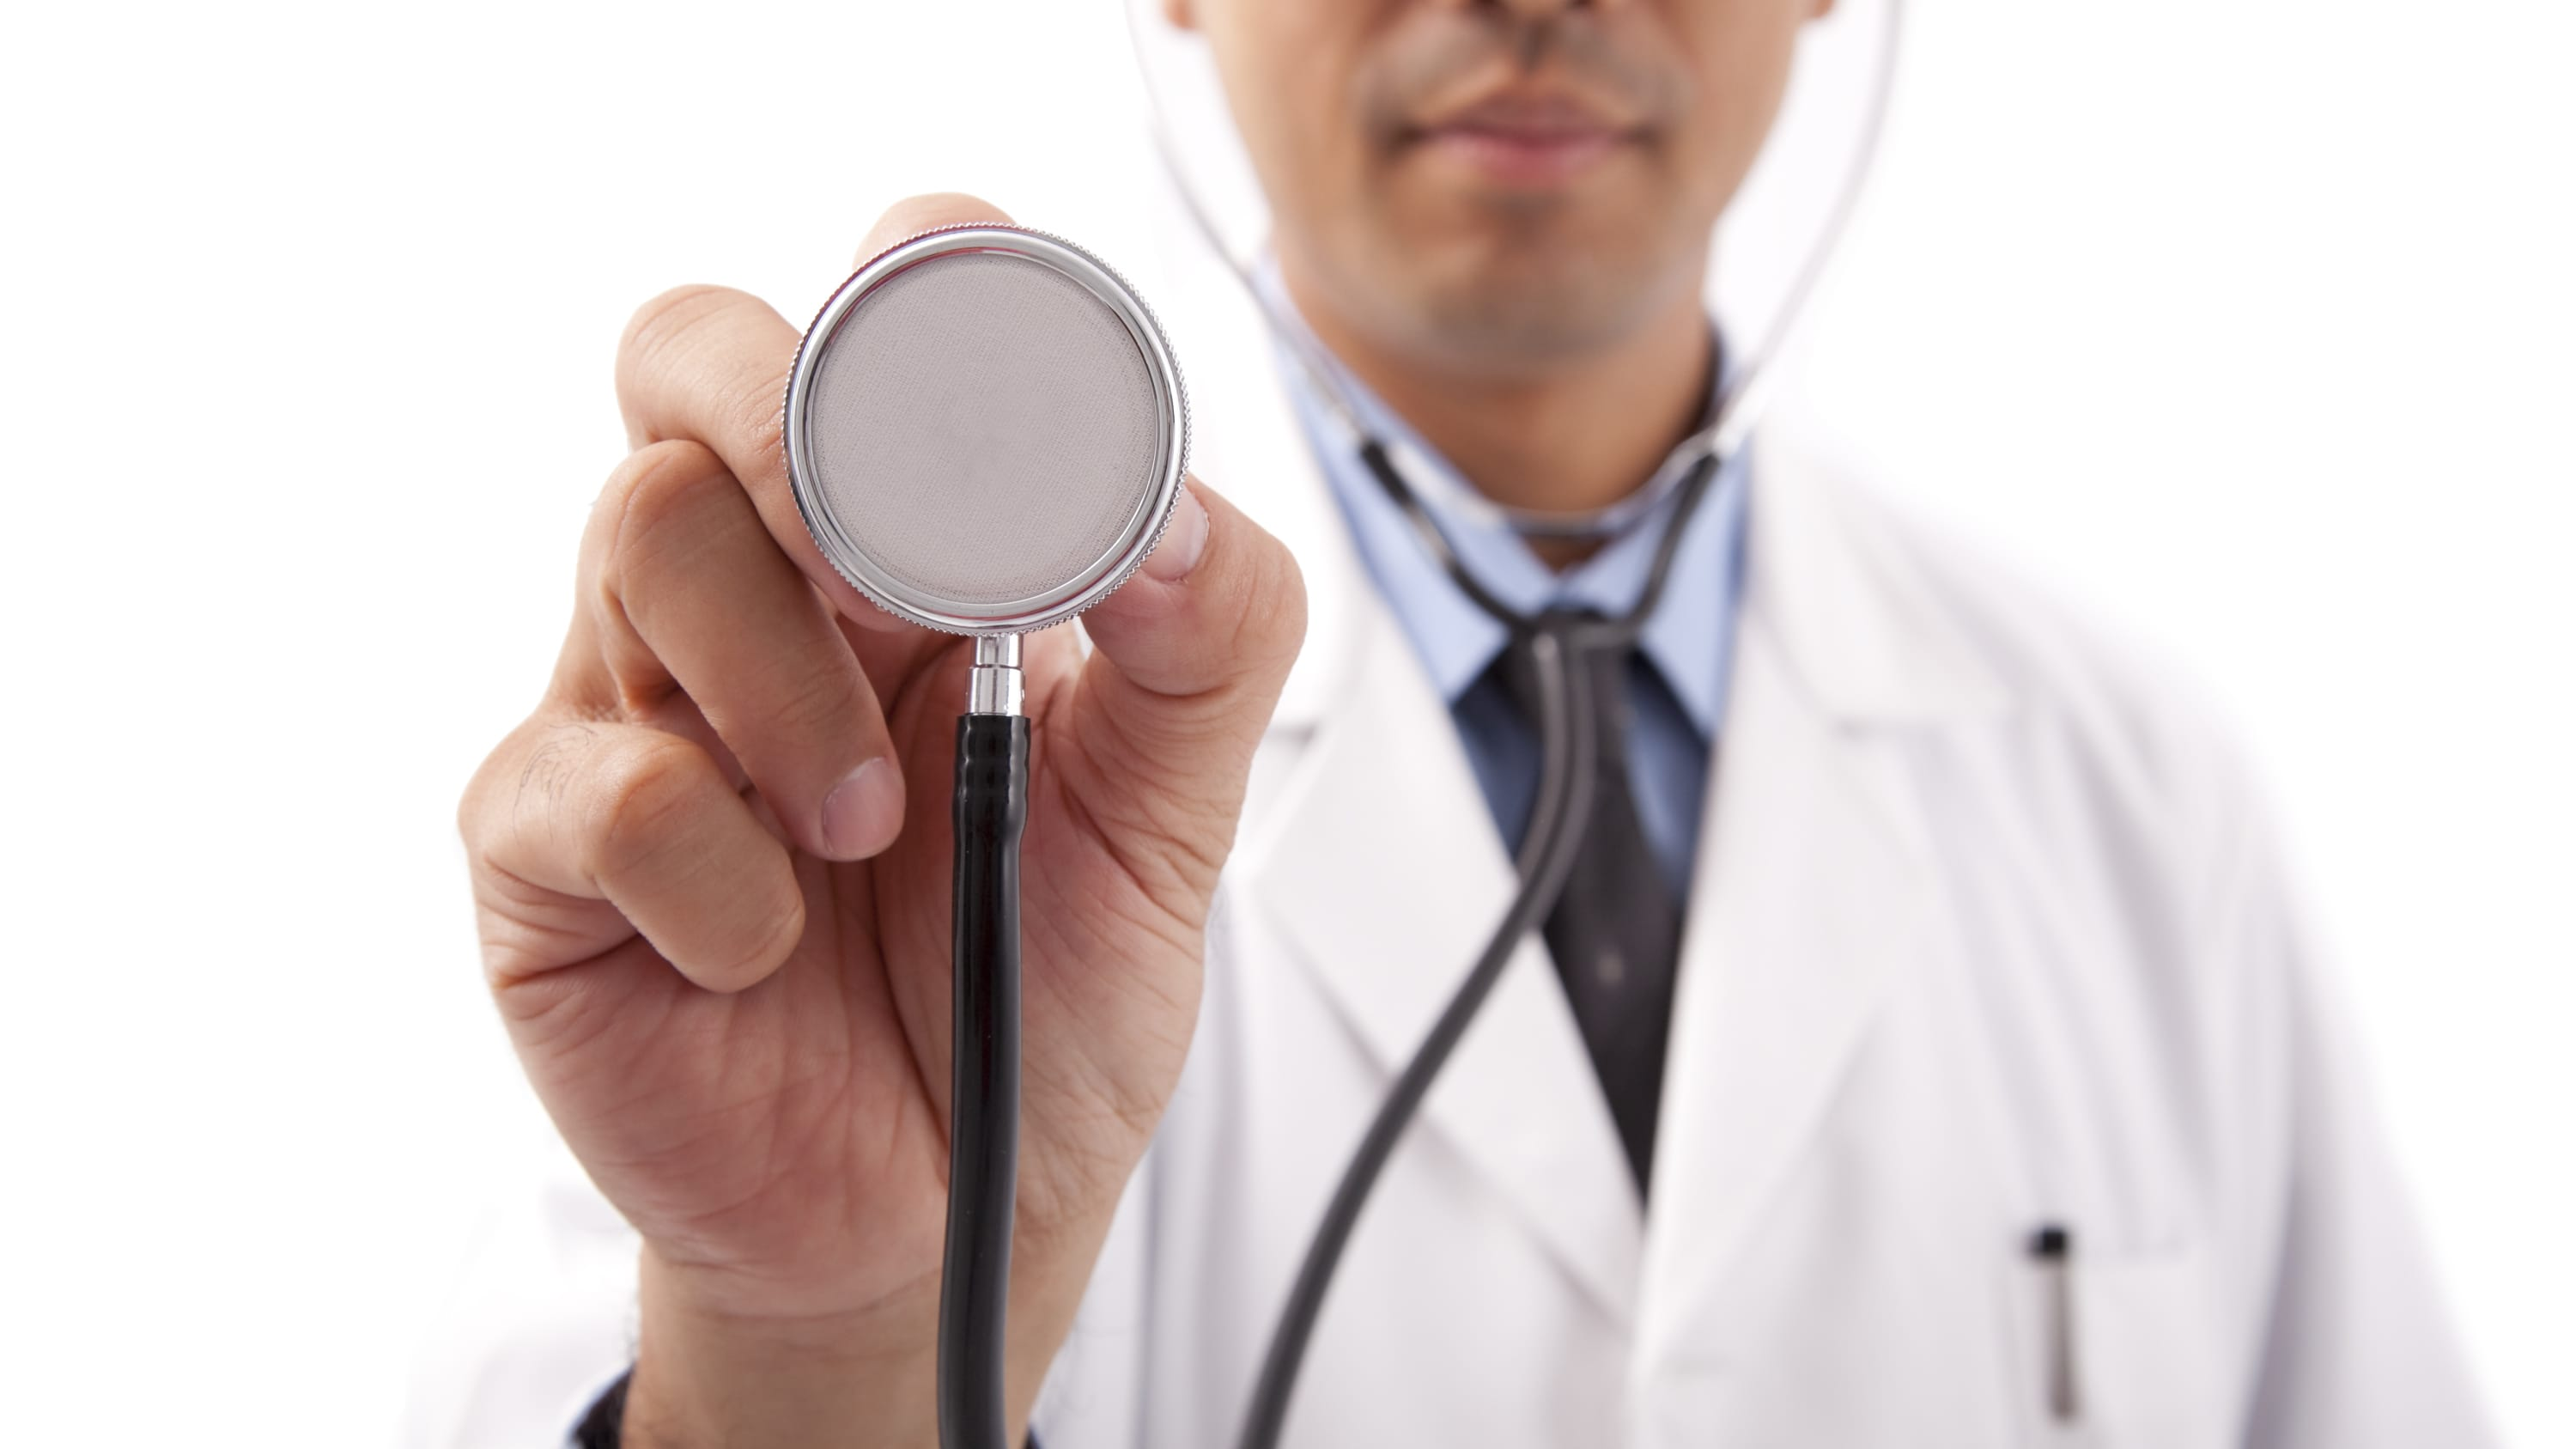 A doctor holds up a stethoscope used to examine a patient who may have a cardiomyopathy.